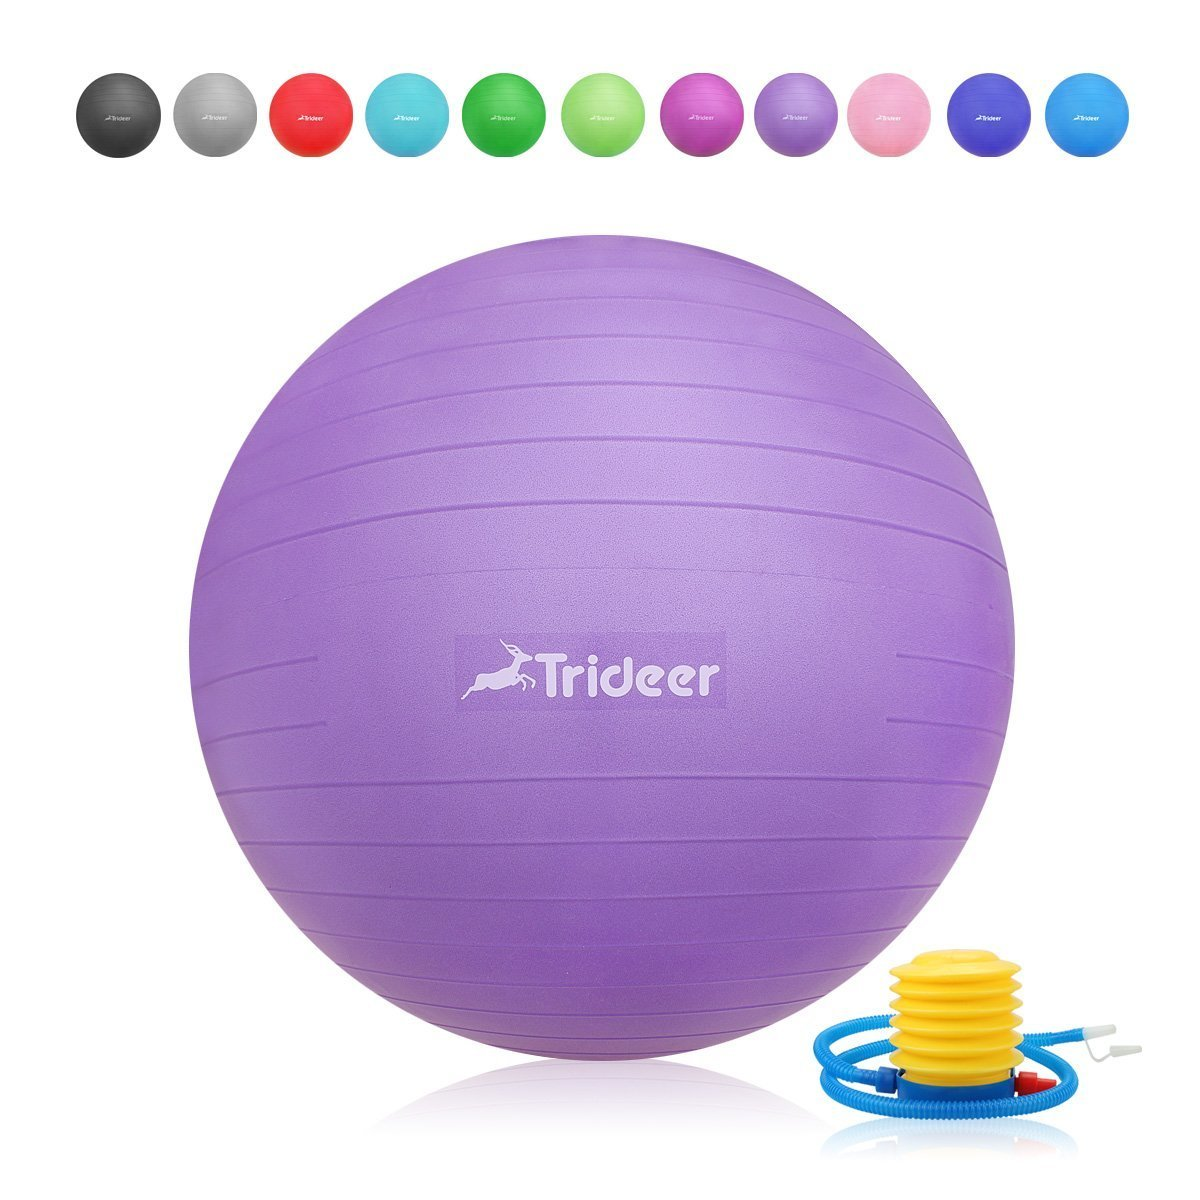 Trideer Exercise Ball (45-85cm) EXTRA THICK Yoga Ball Chair, Anti-Burst Heavy Duty Stability Ball Supports 2200lbs, Birthing Ball with Quick Pump (Office & Home & Gym) (Purple, 65cm)